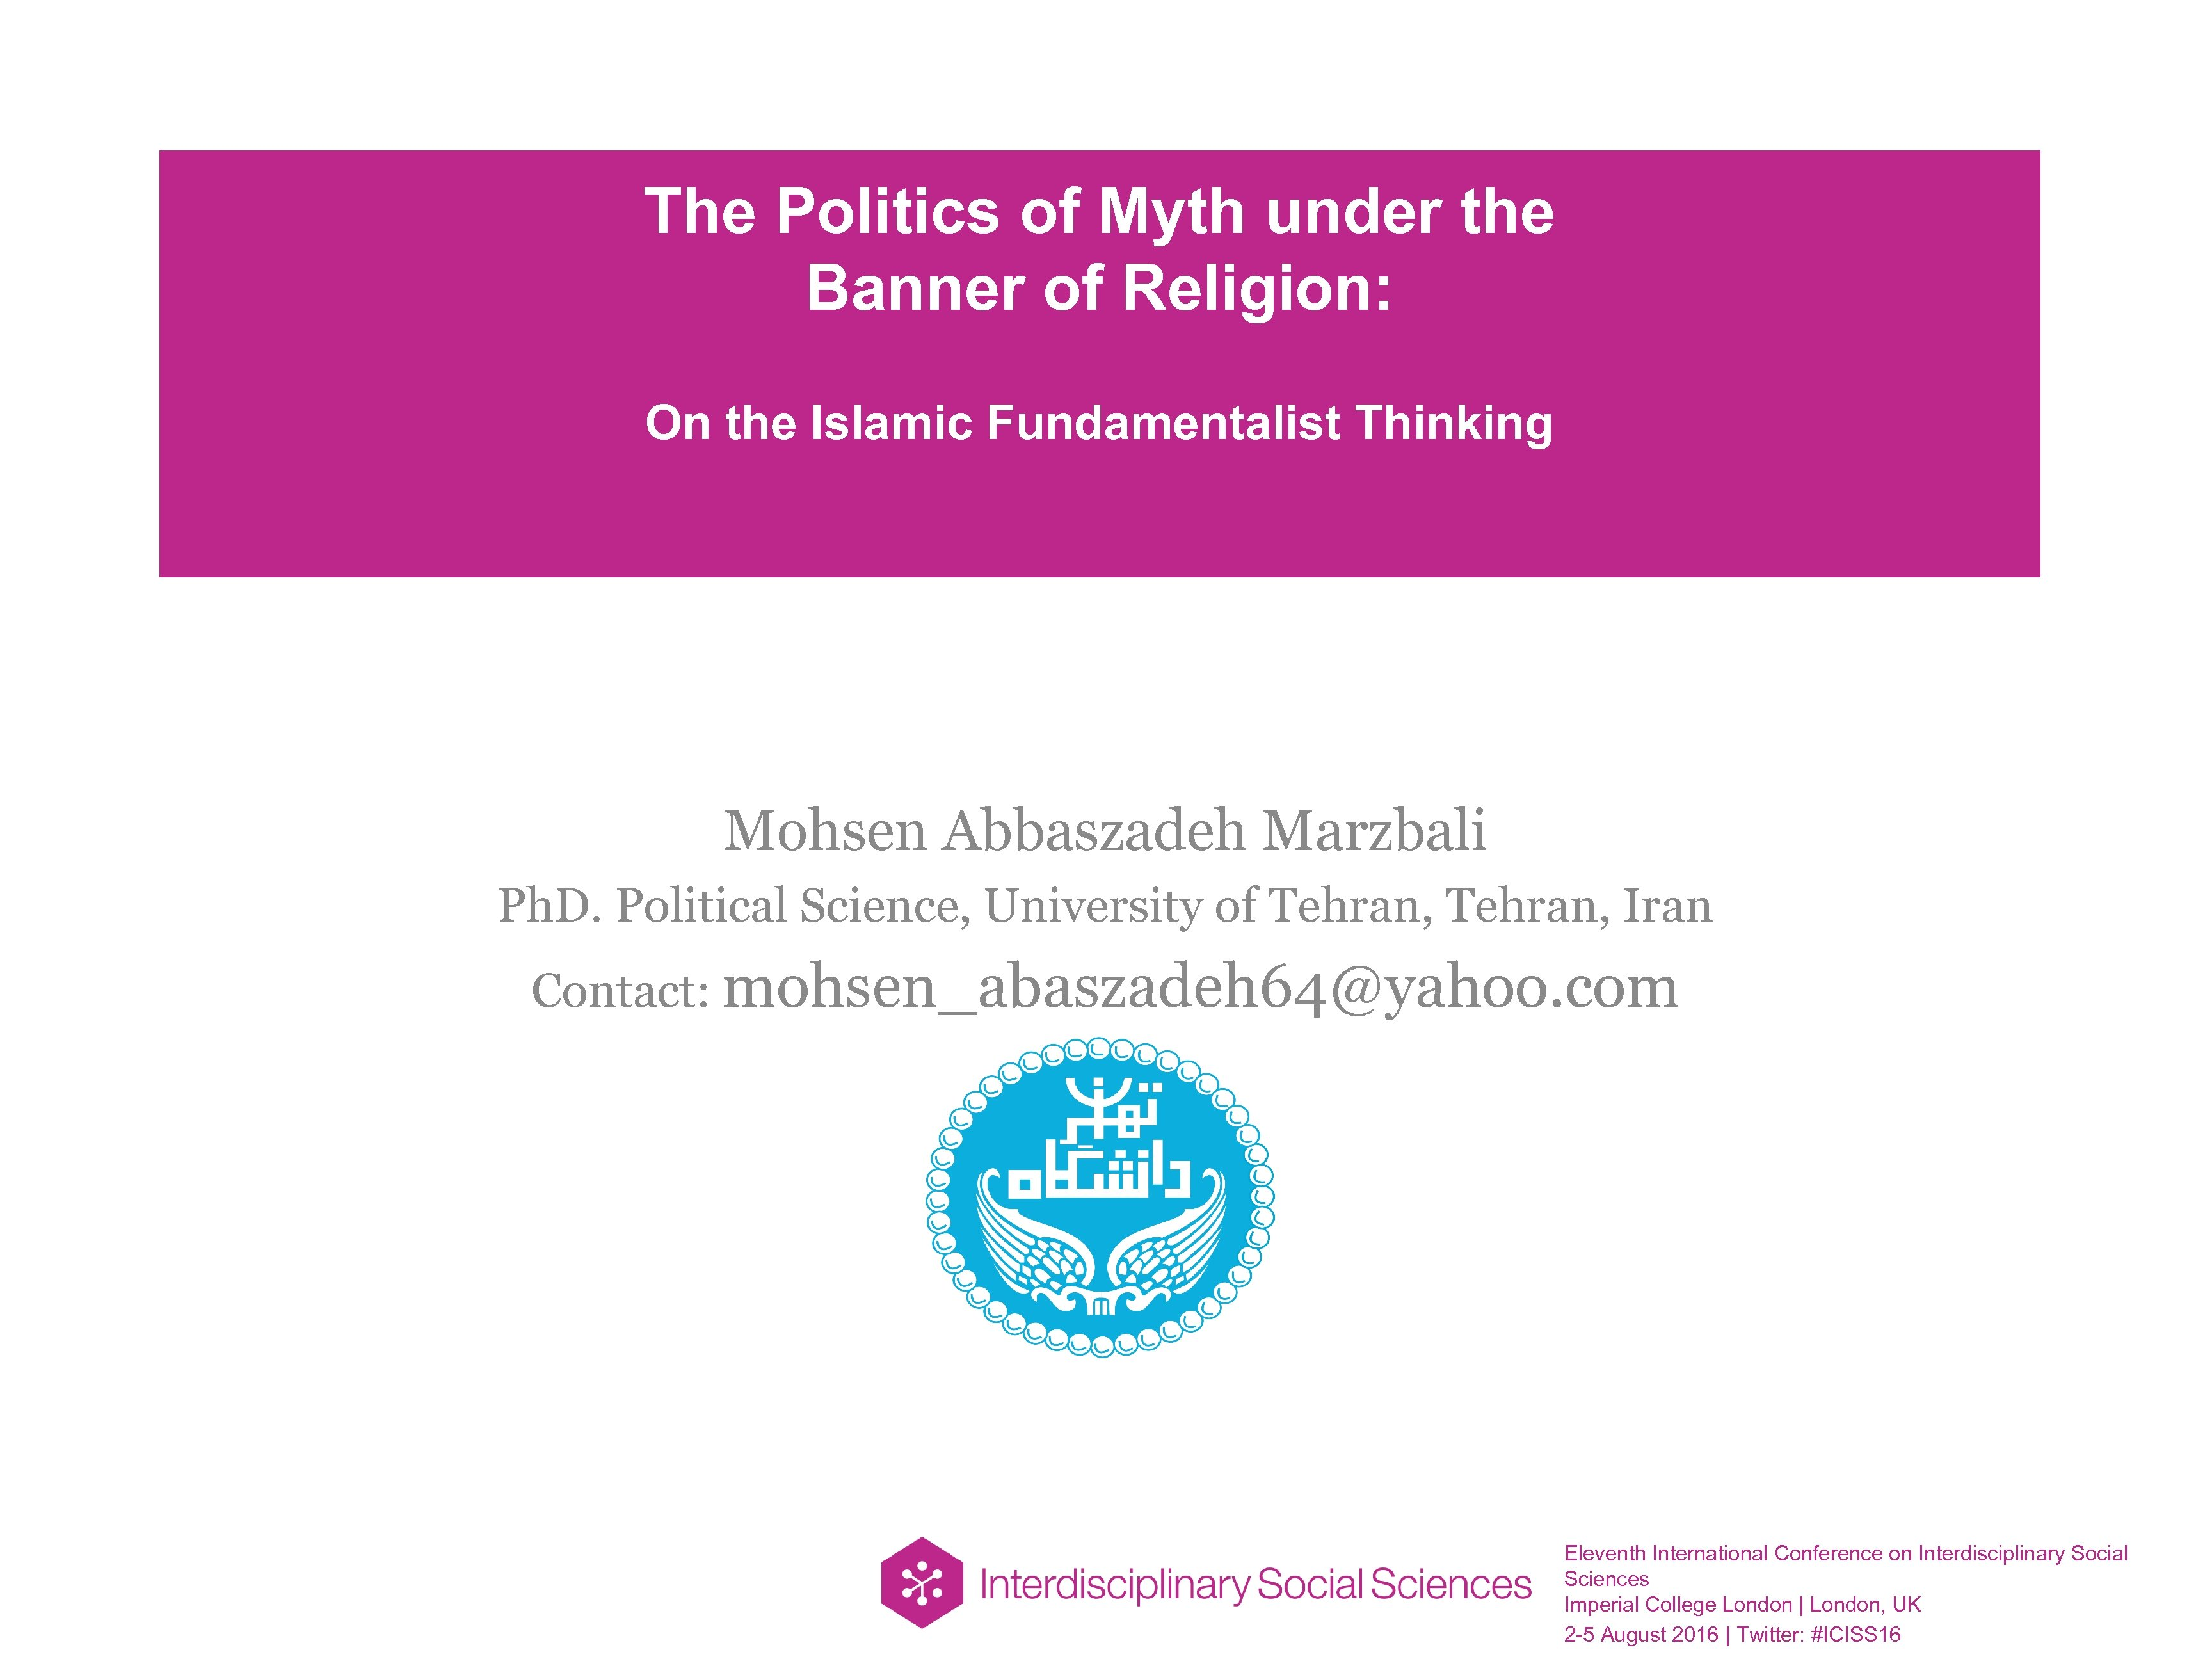 The Politics of Myth under the Banner of Religion: On the Islamic Fundamentalist Thinking